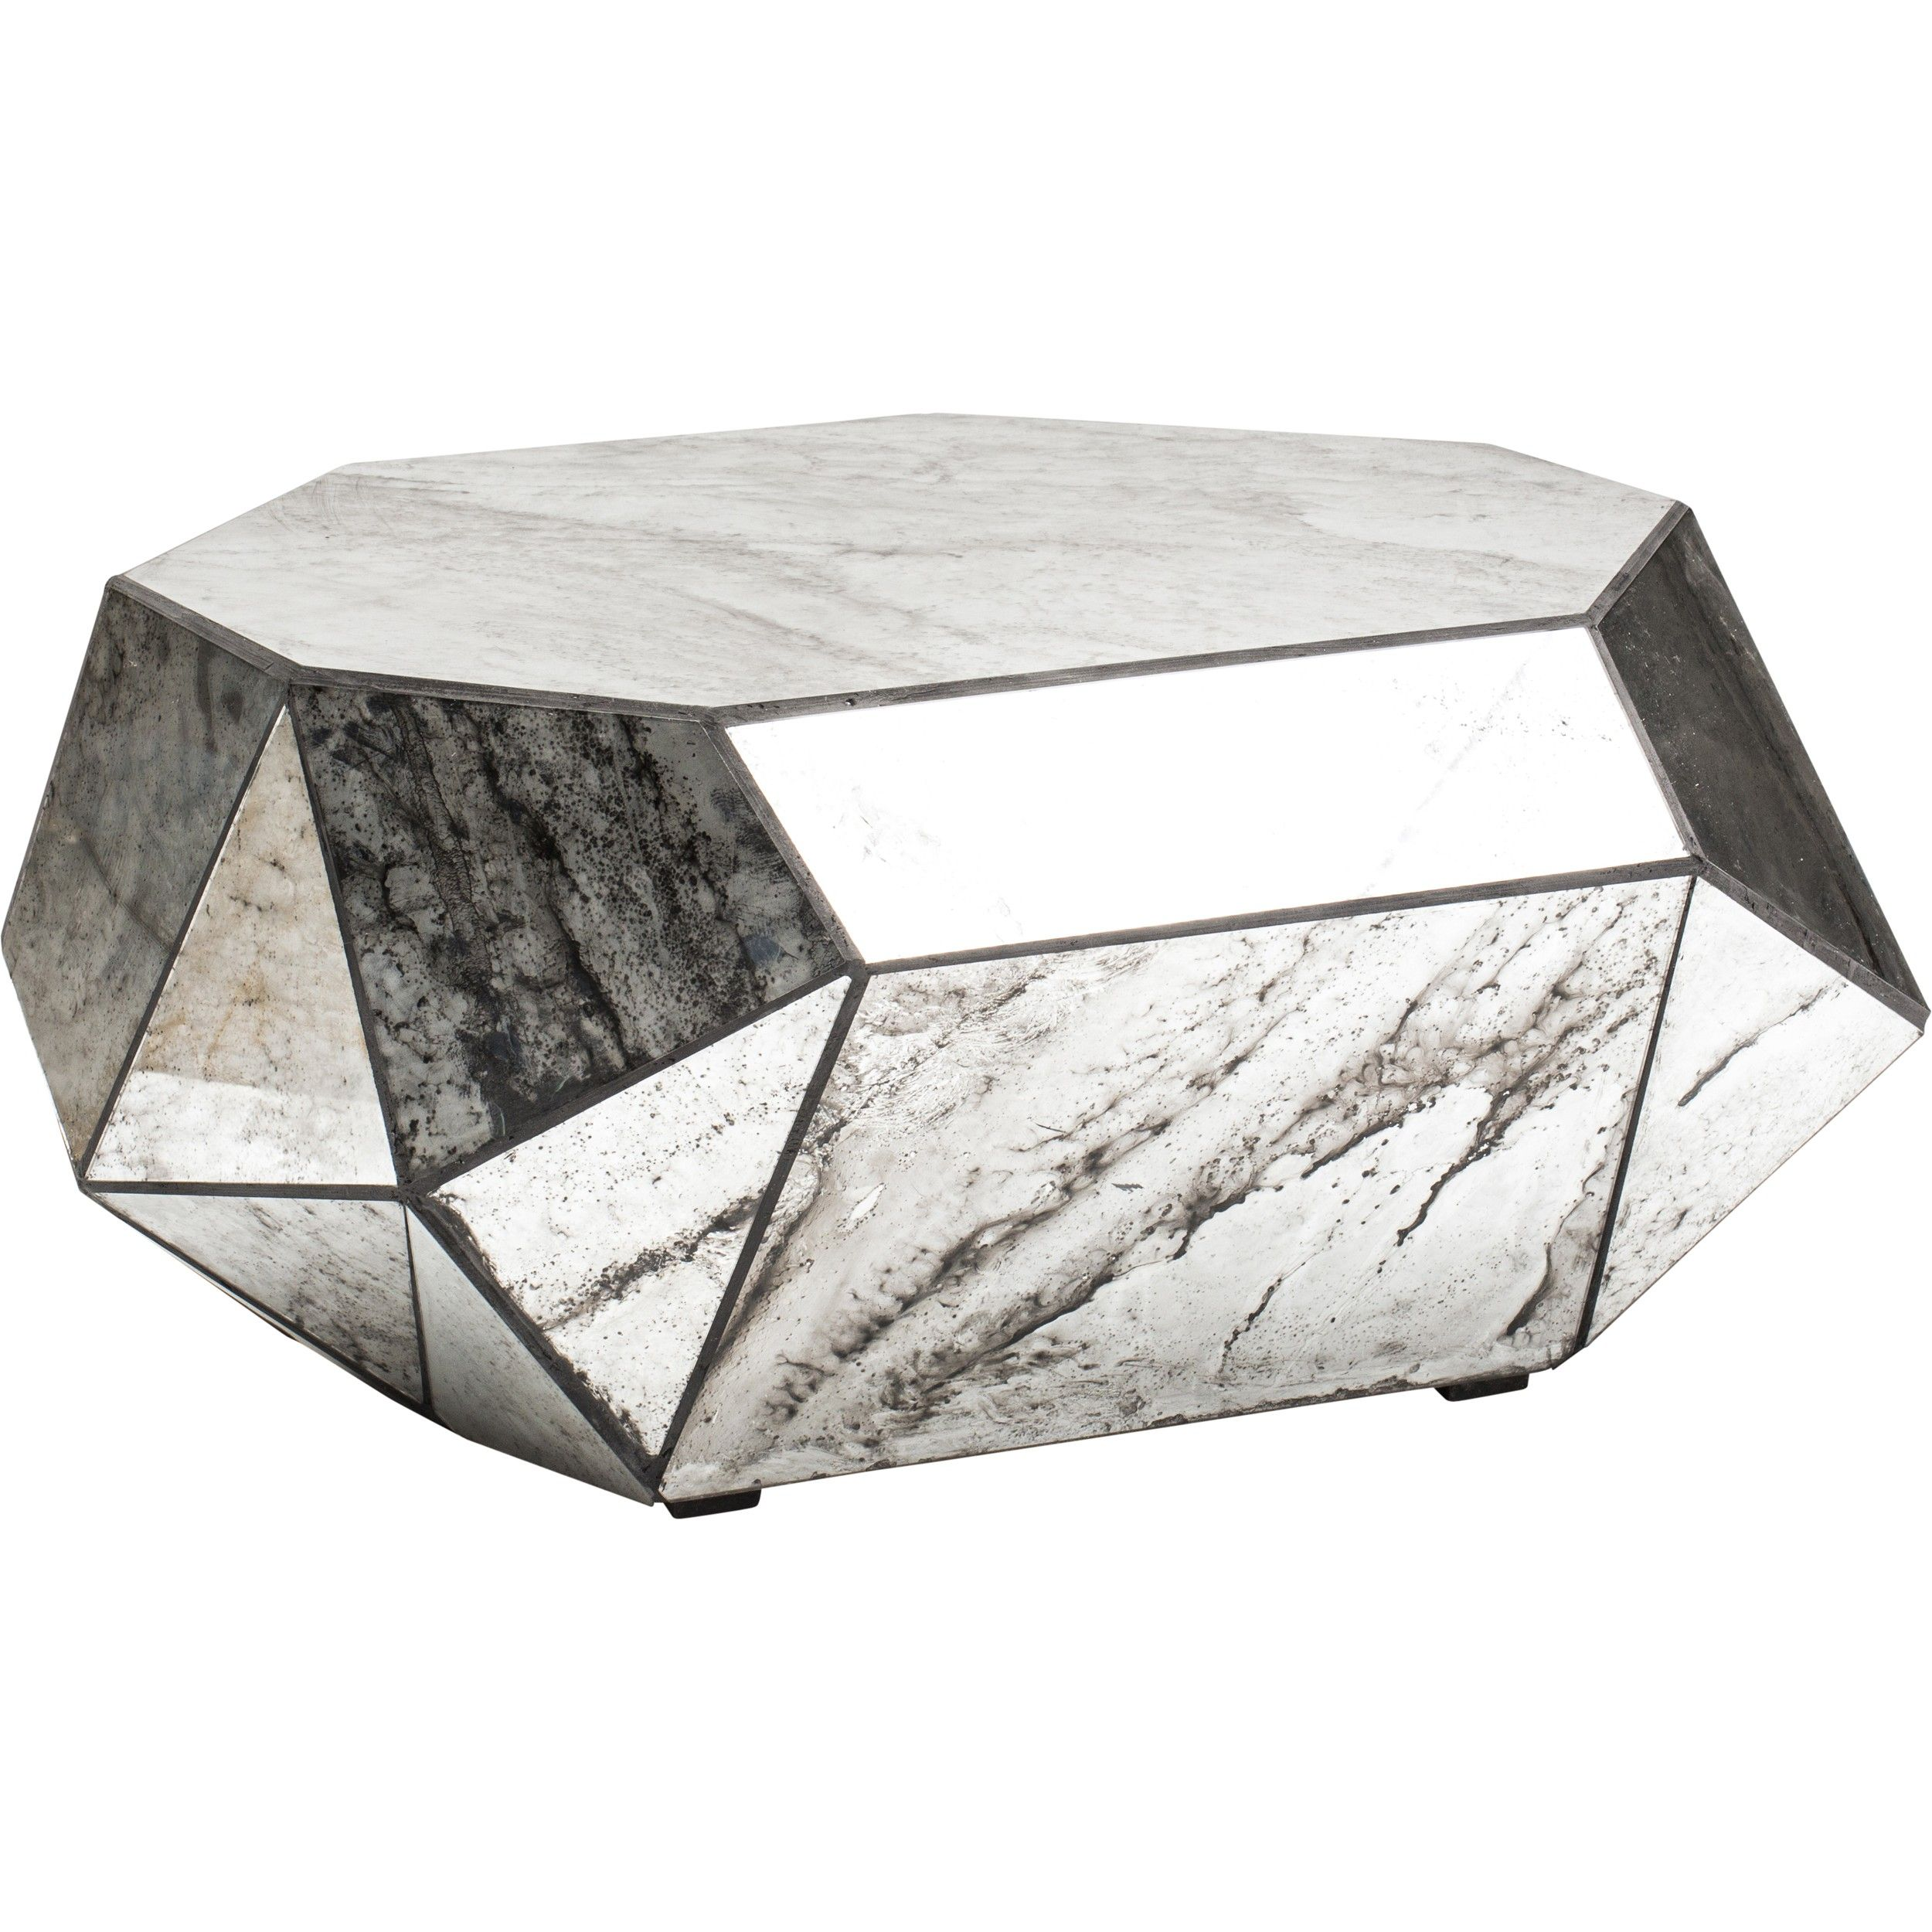 Reflections coffee table furniture accent tables coffee showcase an absolute sense of style with this medieval age infused reflections coffee table creating an alluring centerpiece this coffee table is encased geotapseo Images